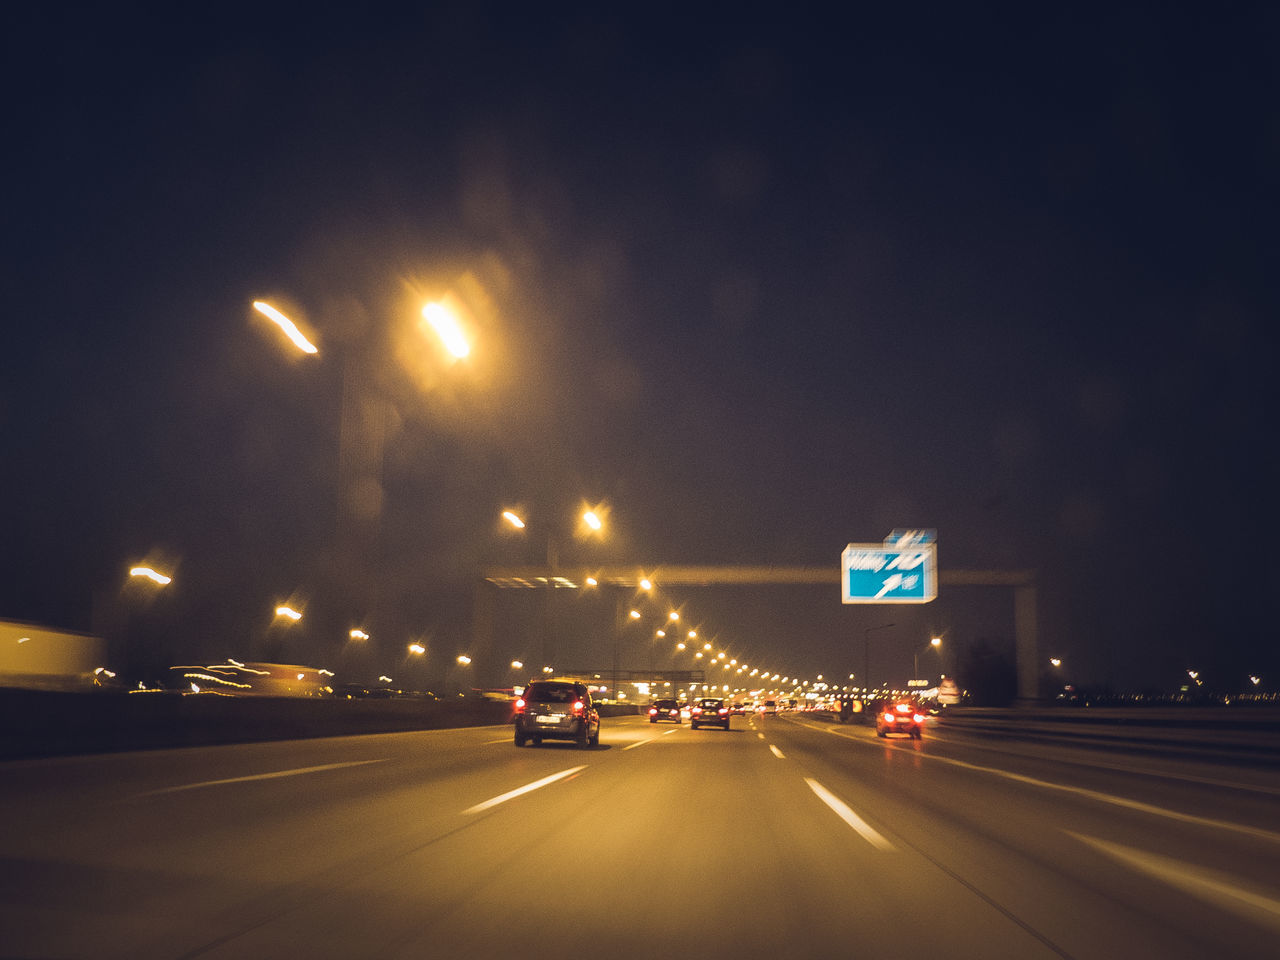 too fast Autobahn Driving Headlights And Taillights Highway Illuminated No People Speed Limit Speed Limit Sign Streetsign Adapted To The City The City Light